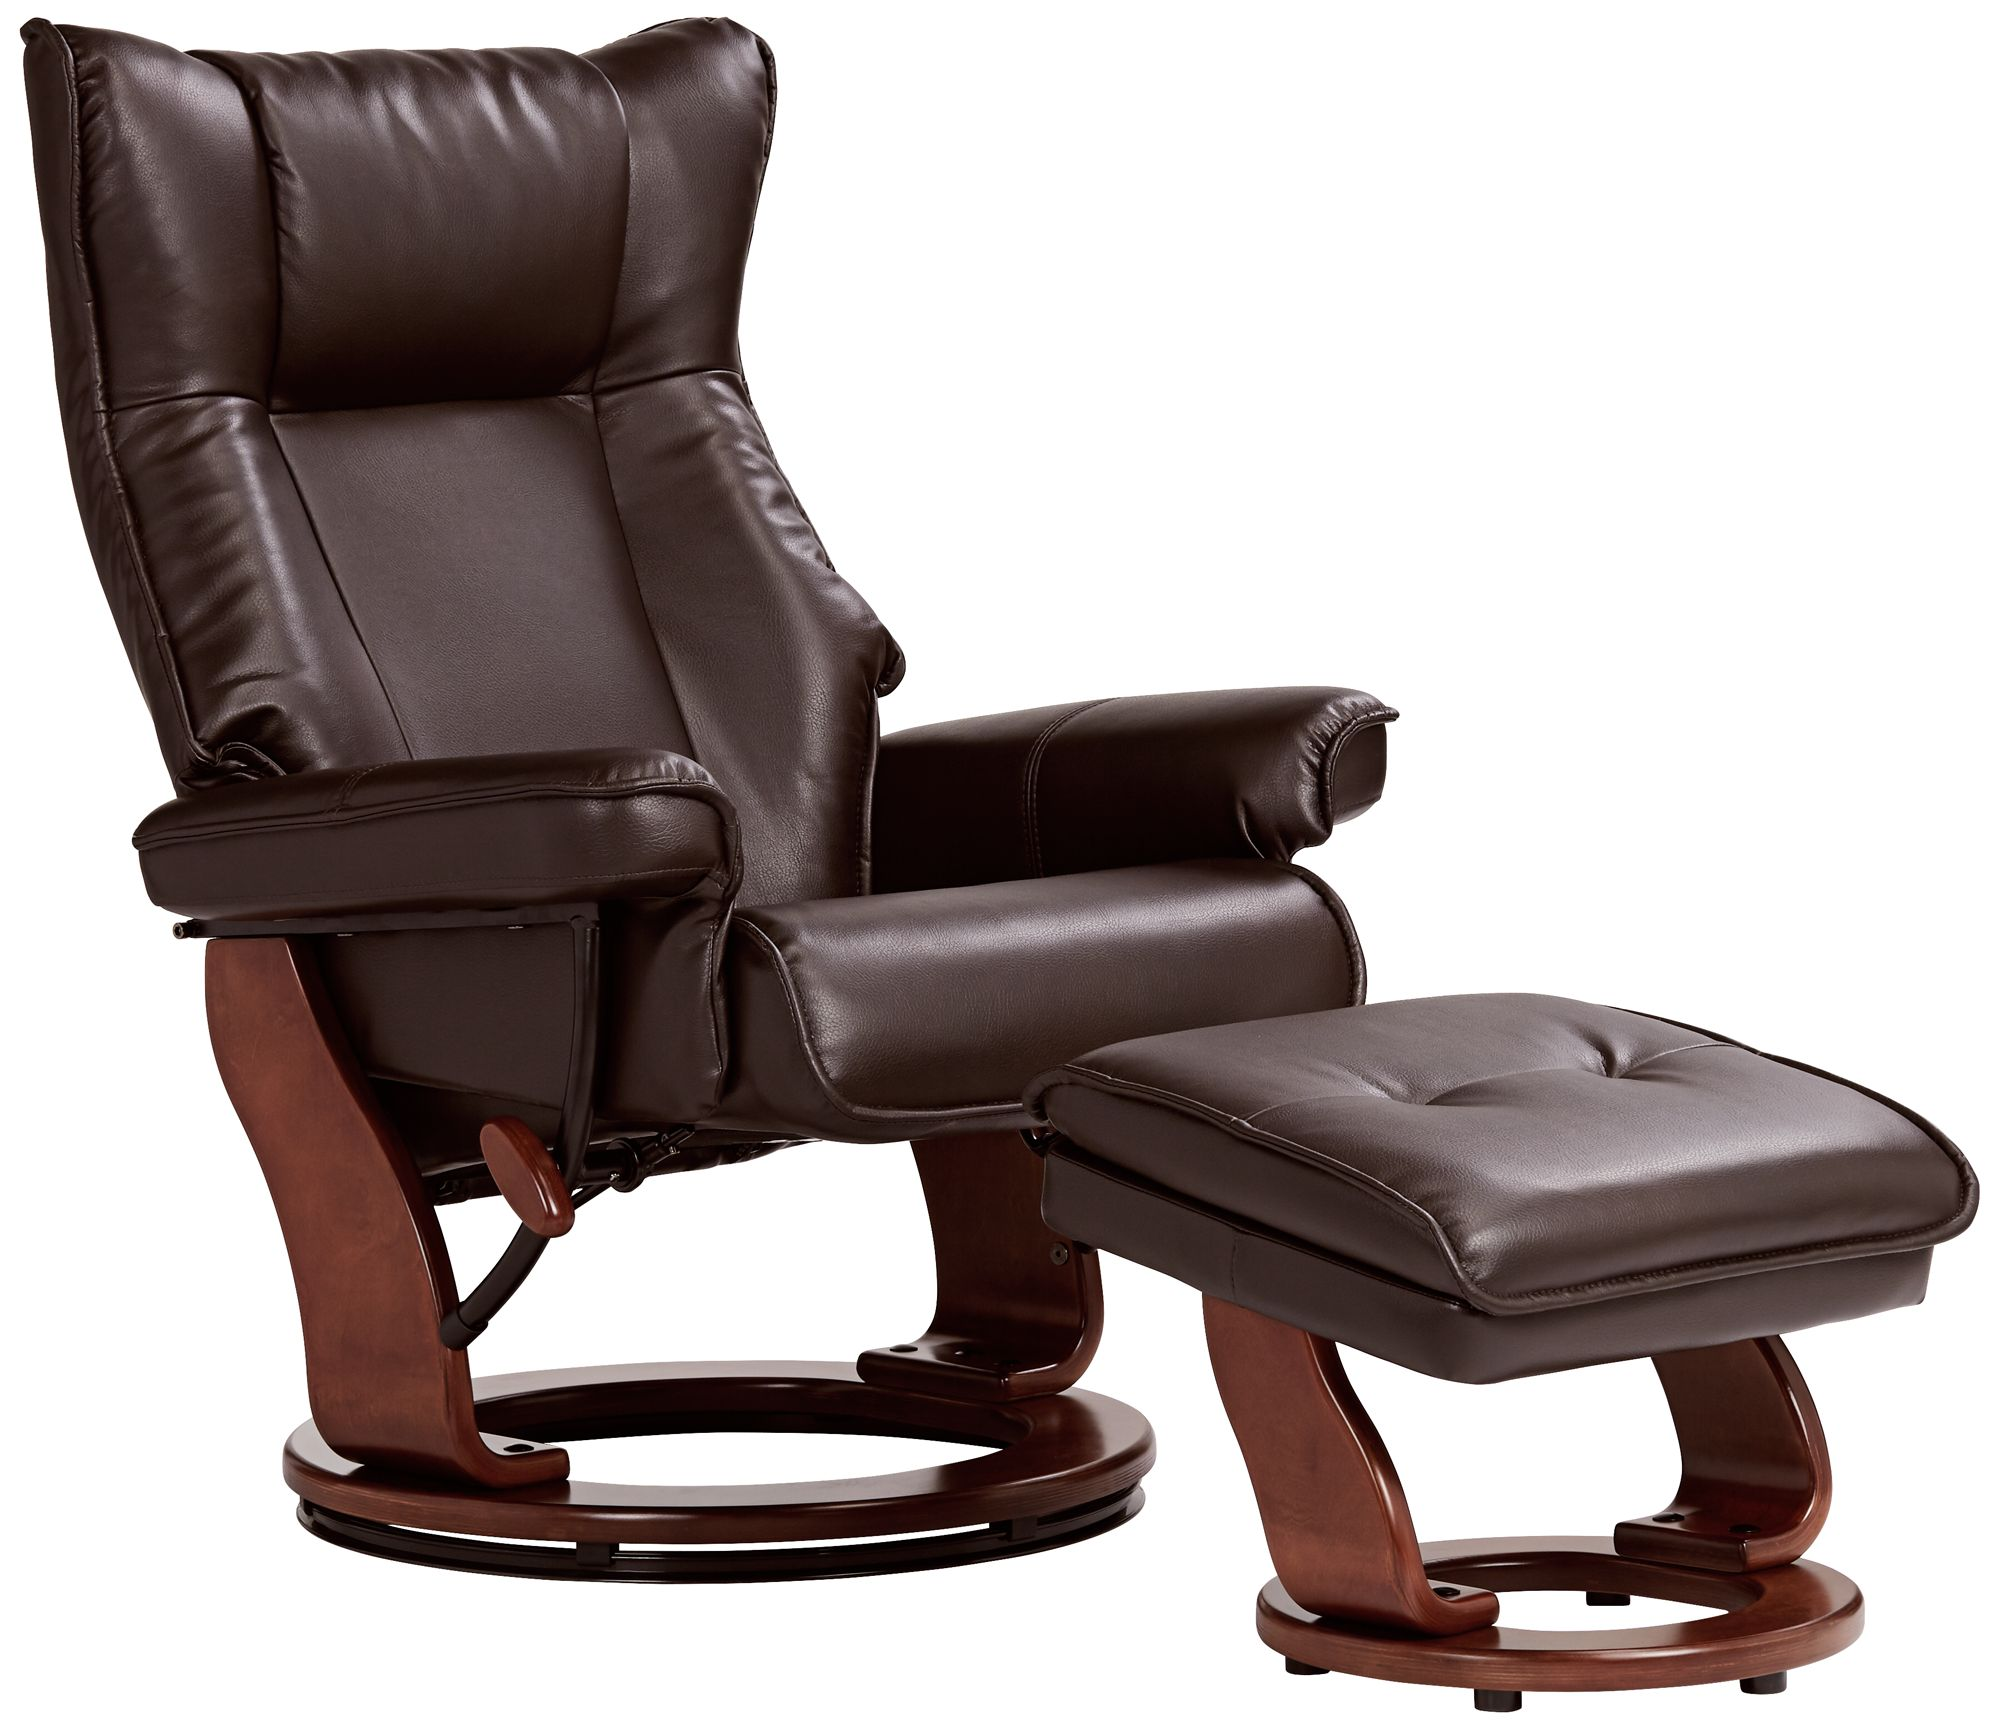 Morgan Java Faux Leather Ottoman and Swiveling Recliner  sc 1 st  L&s Plus & Recliners - New Recliner Chairs | Lamps Plus islam-shia.org